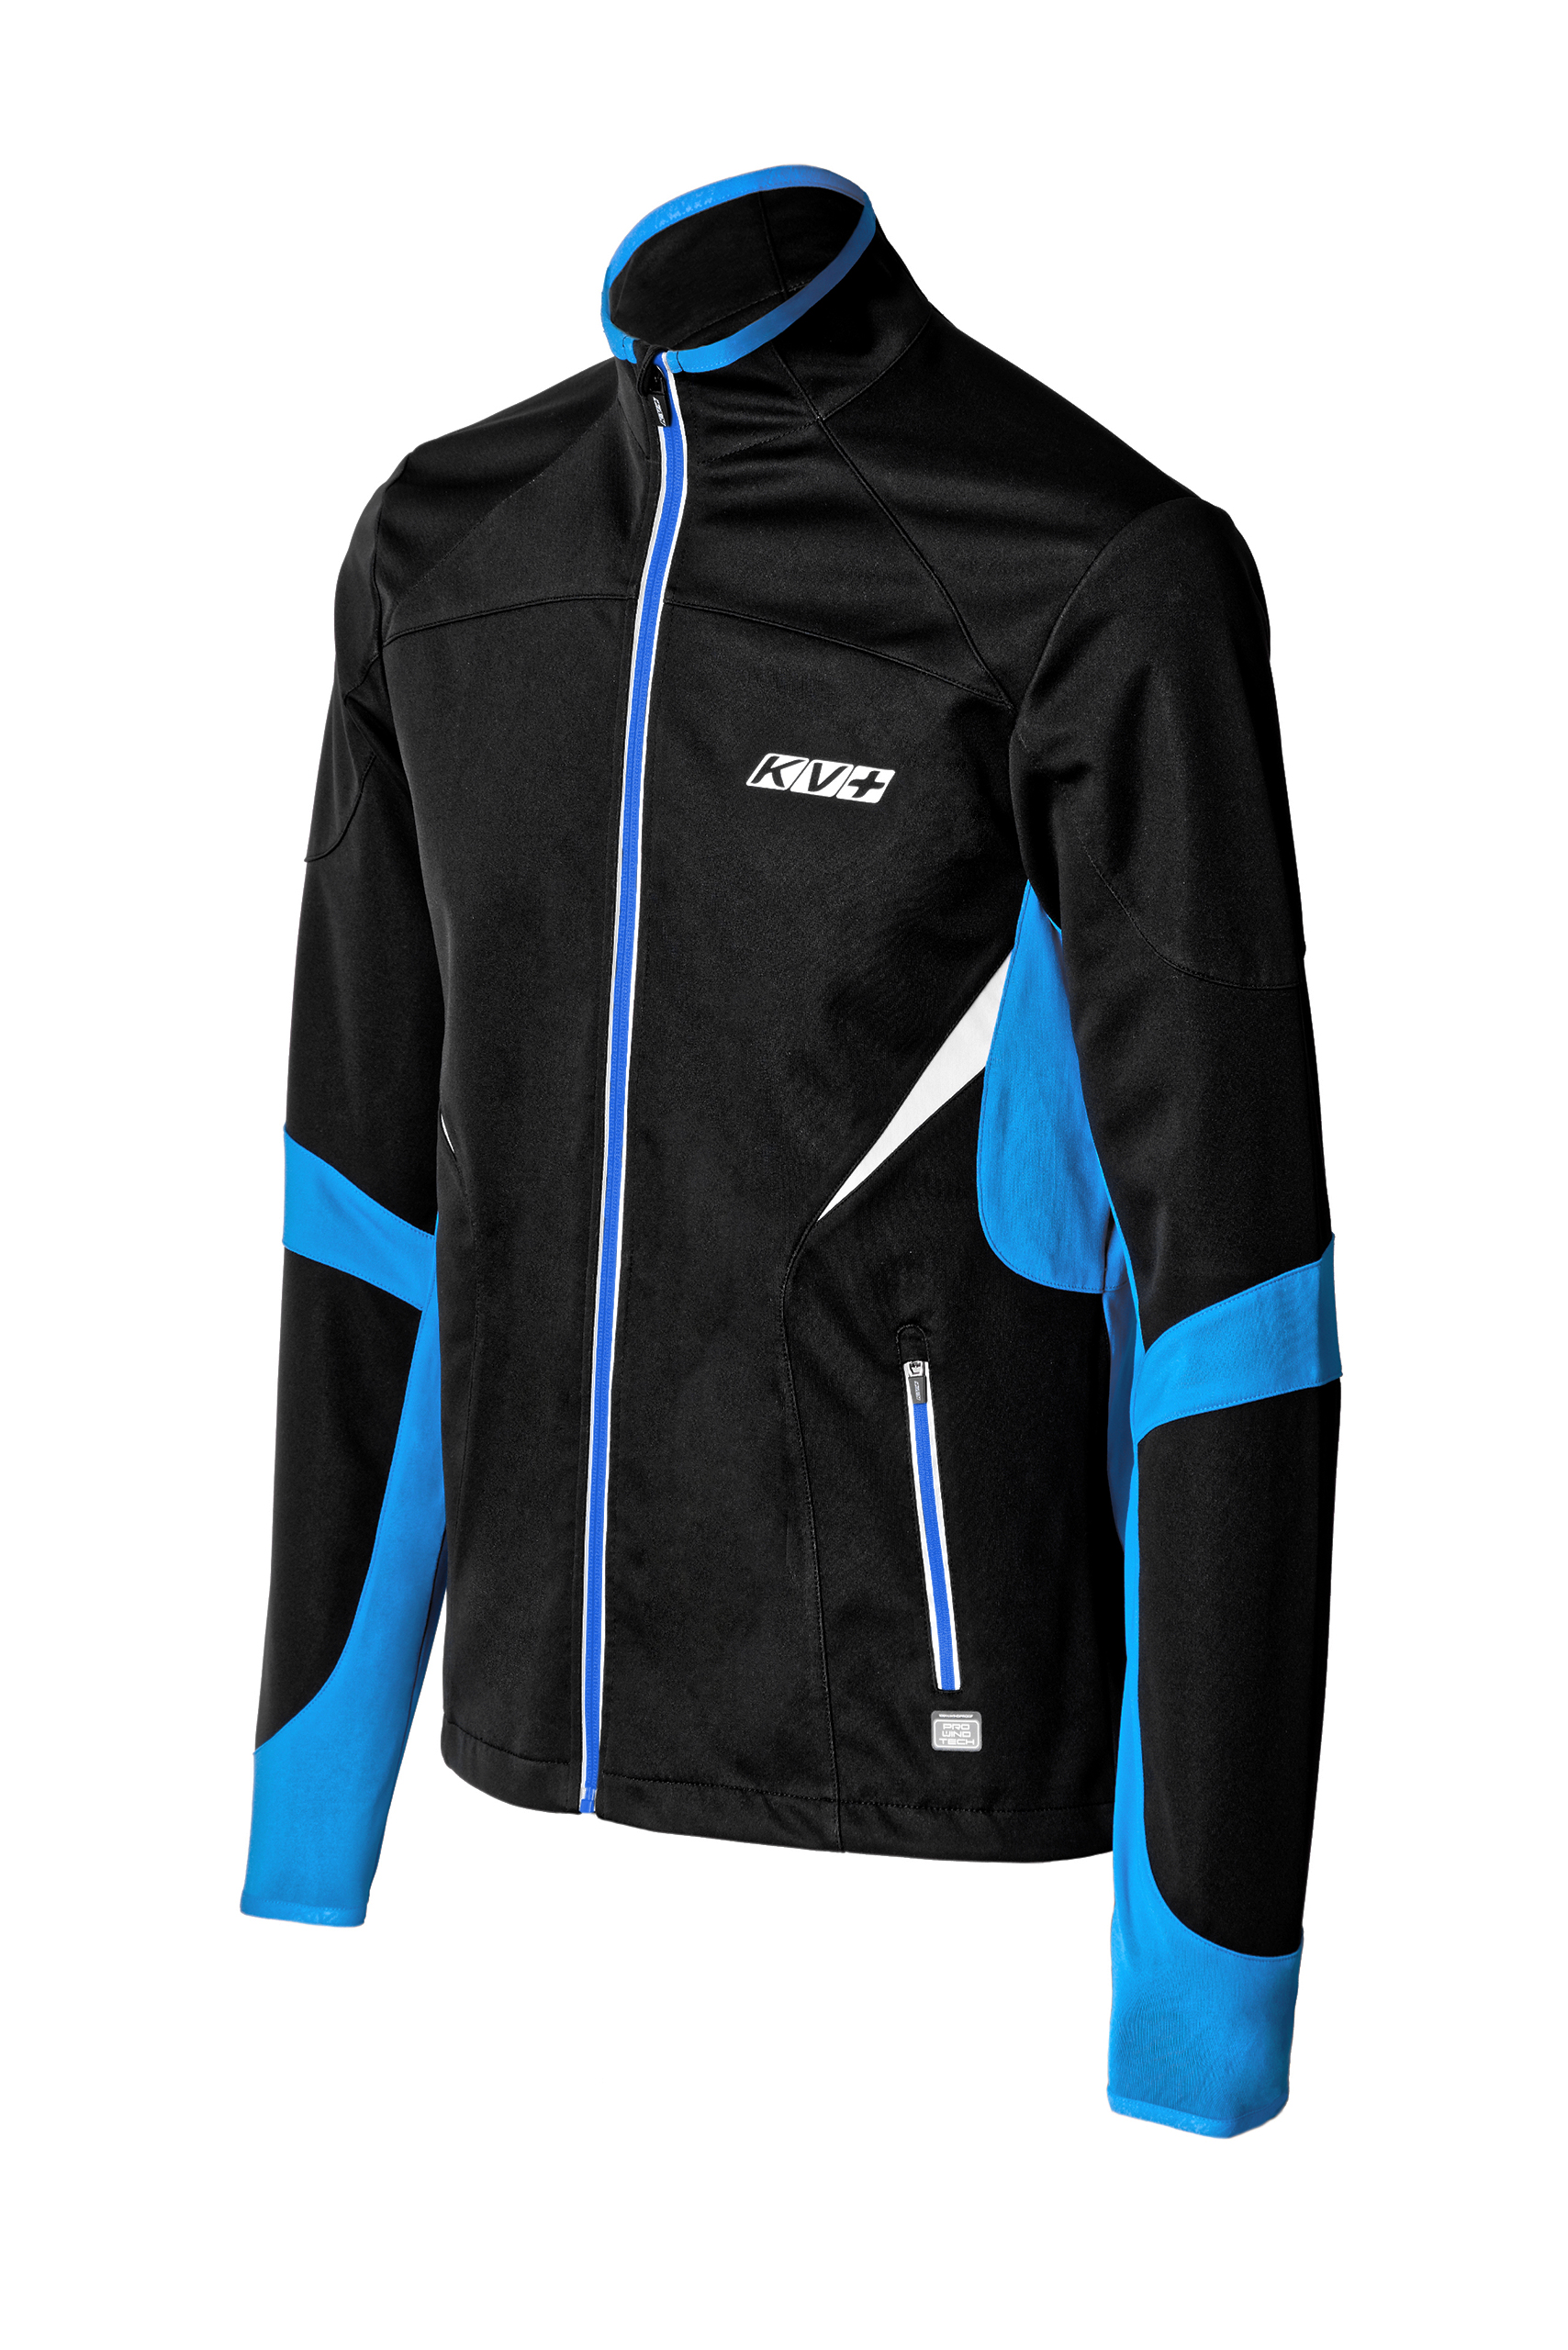 LAHTI JACKET UNISEX (black/blue)